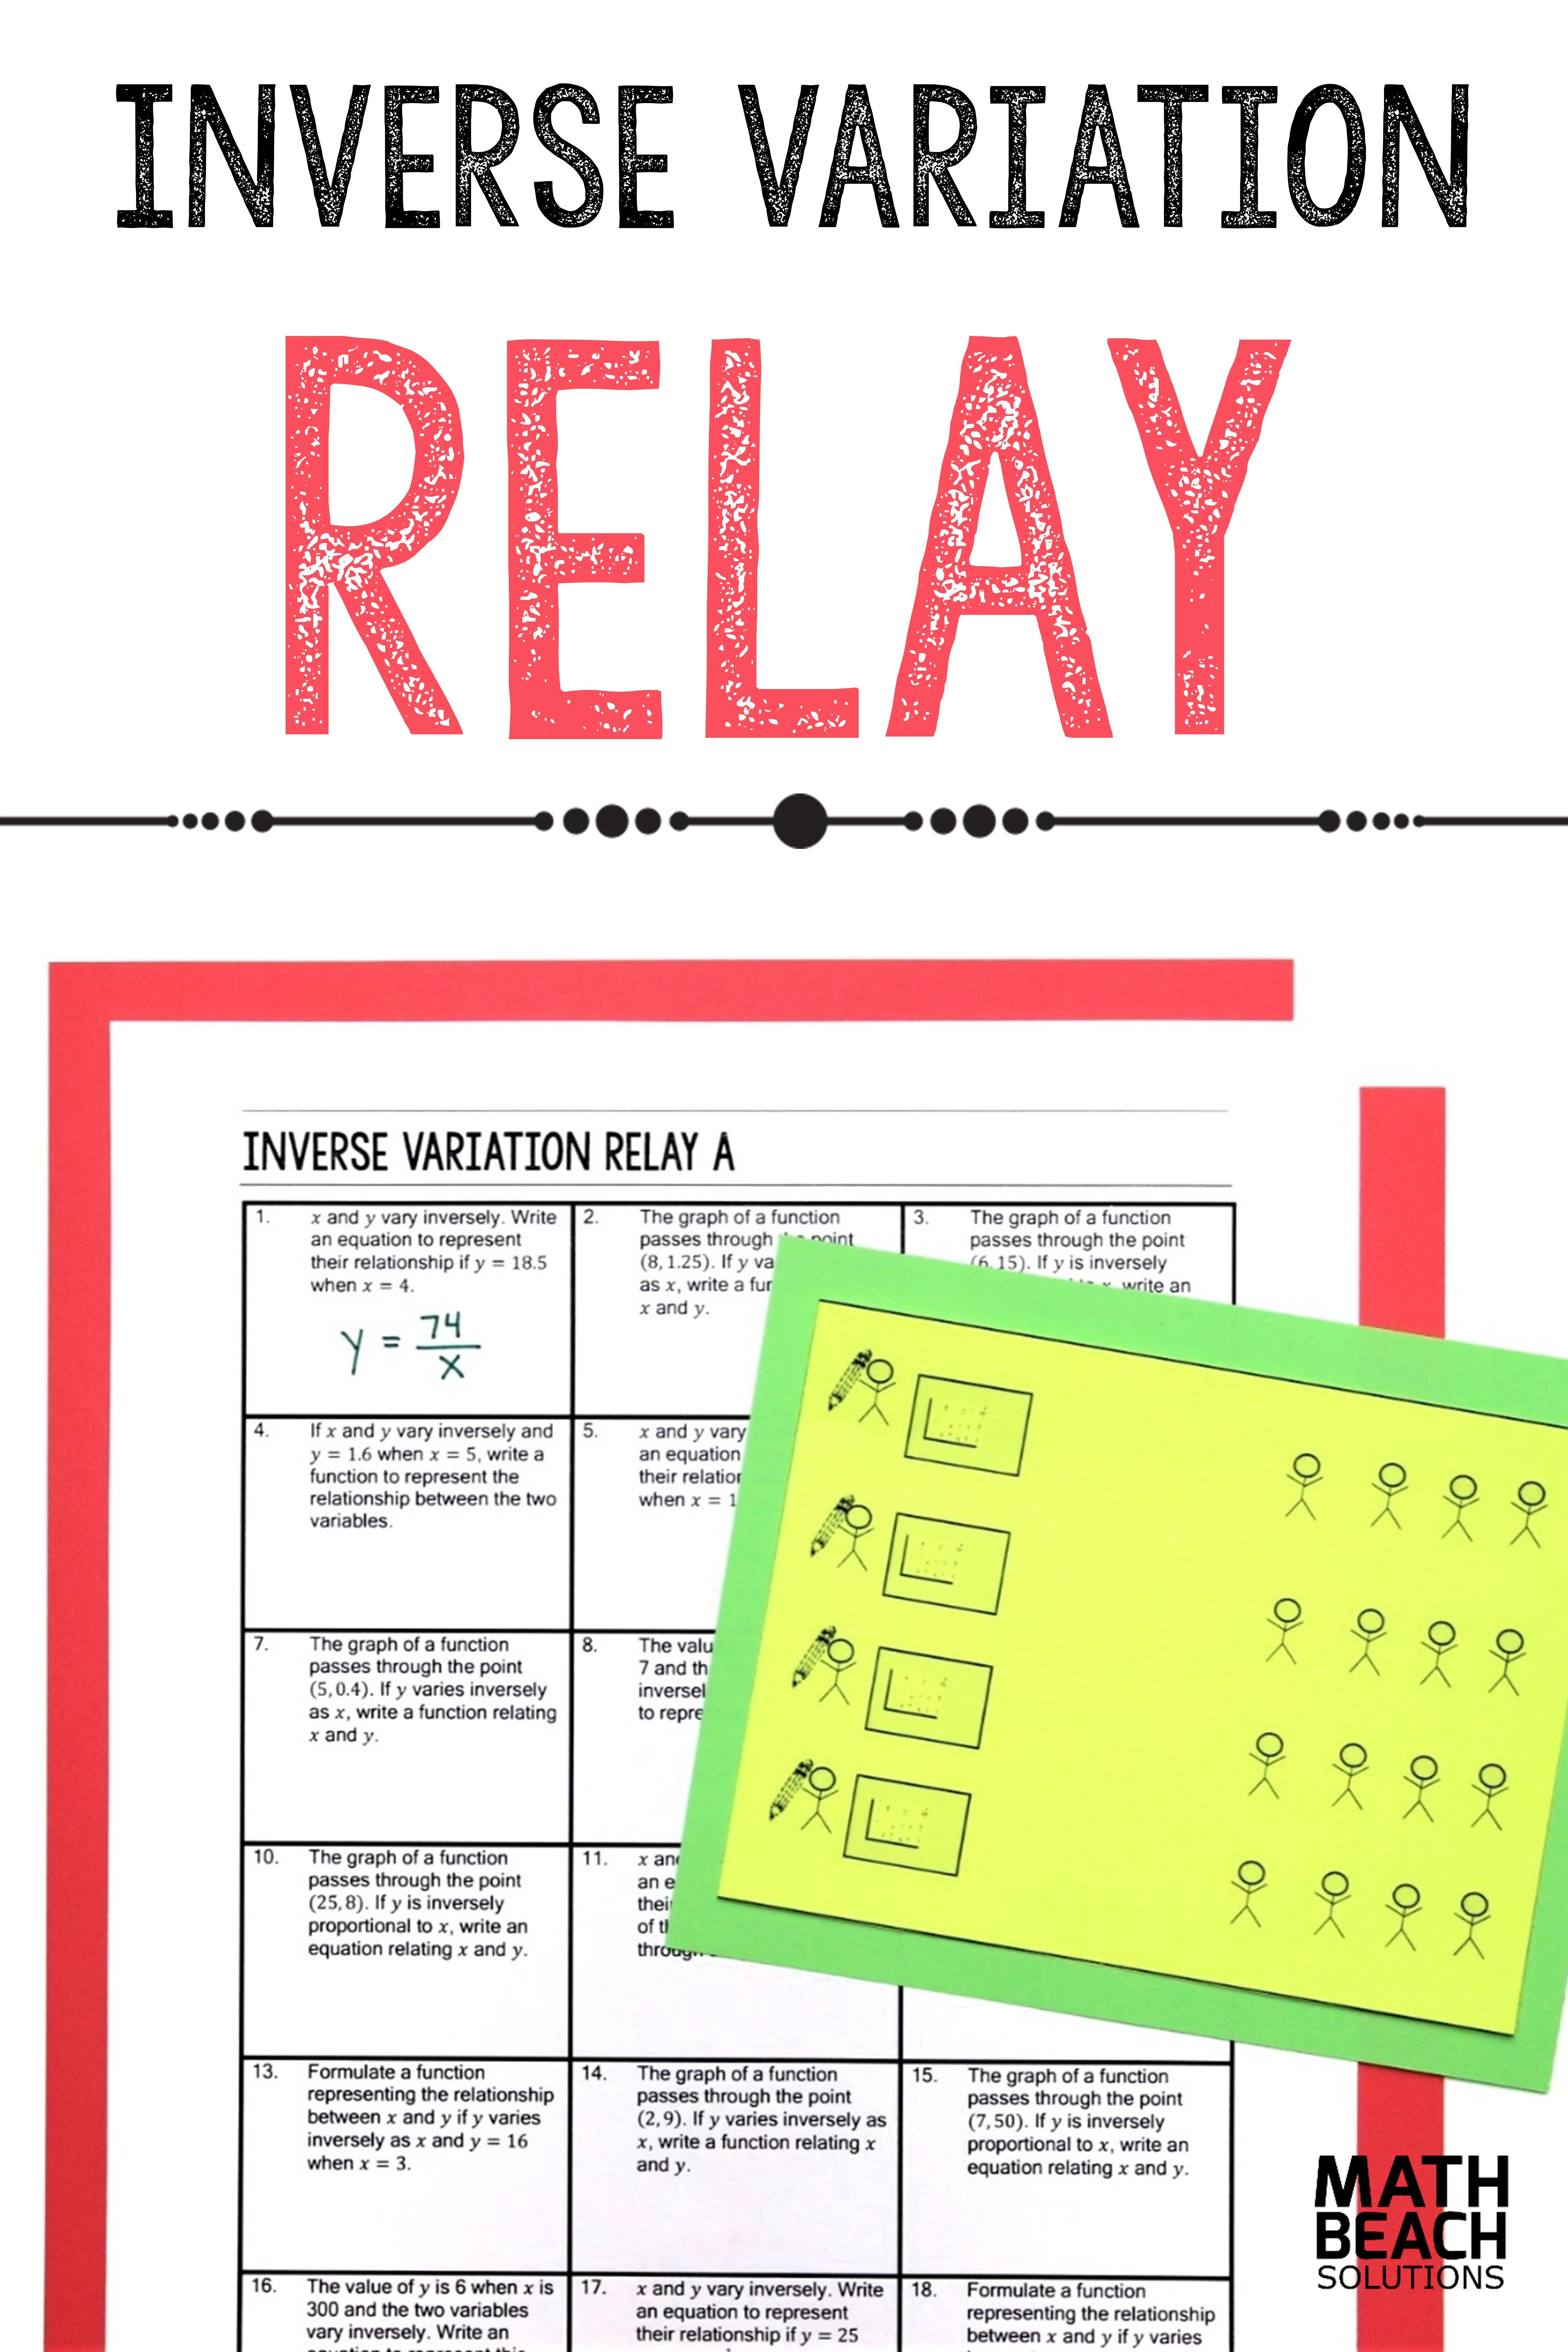 Inverse Variation Relay Activity